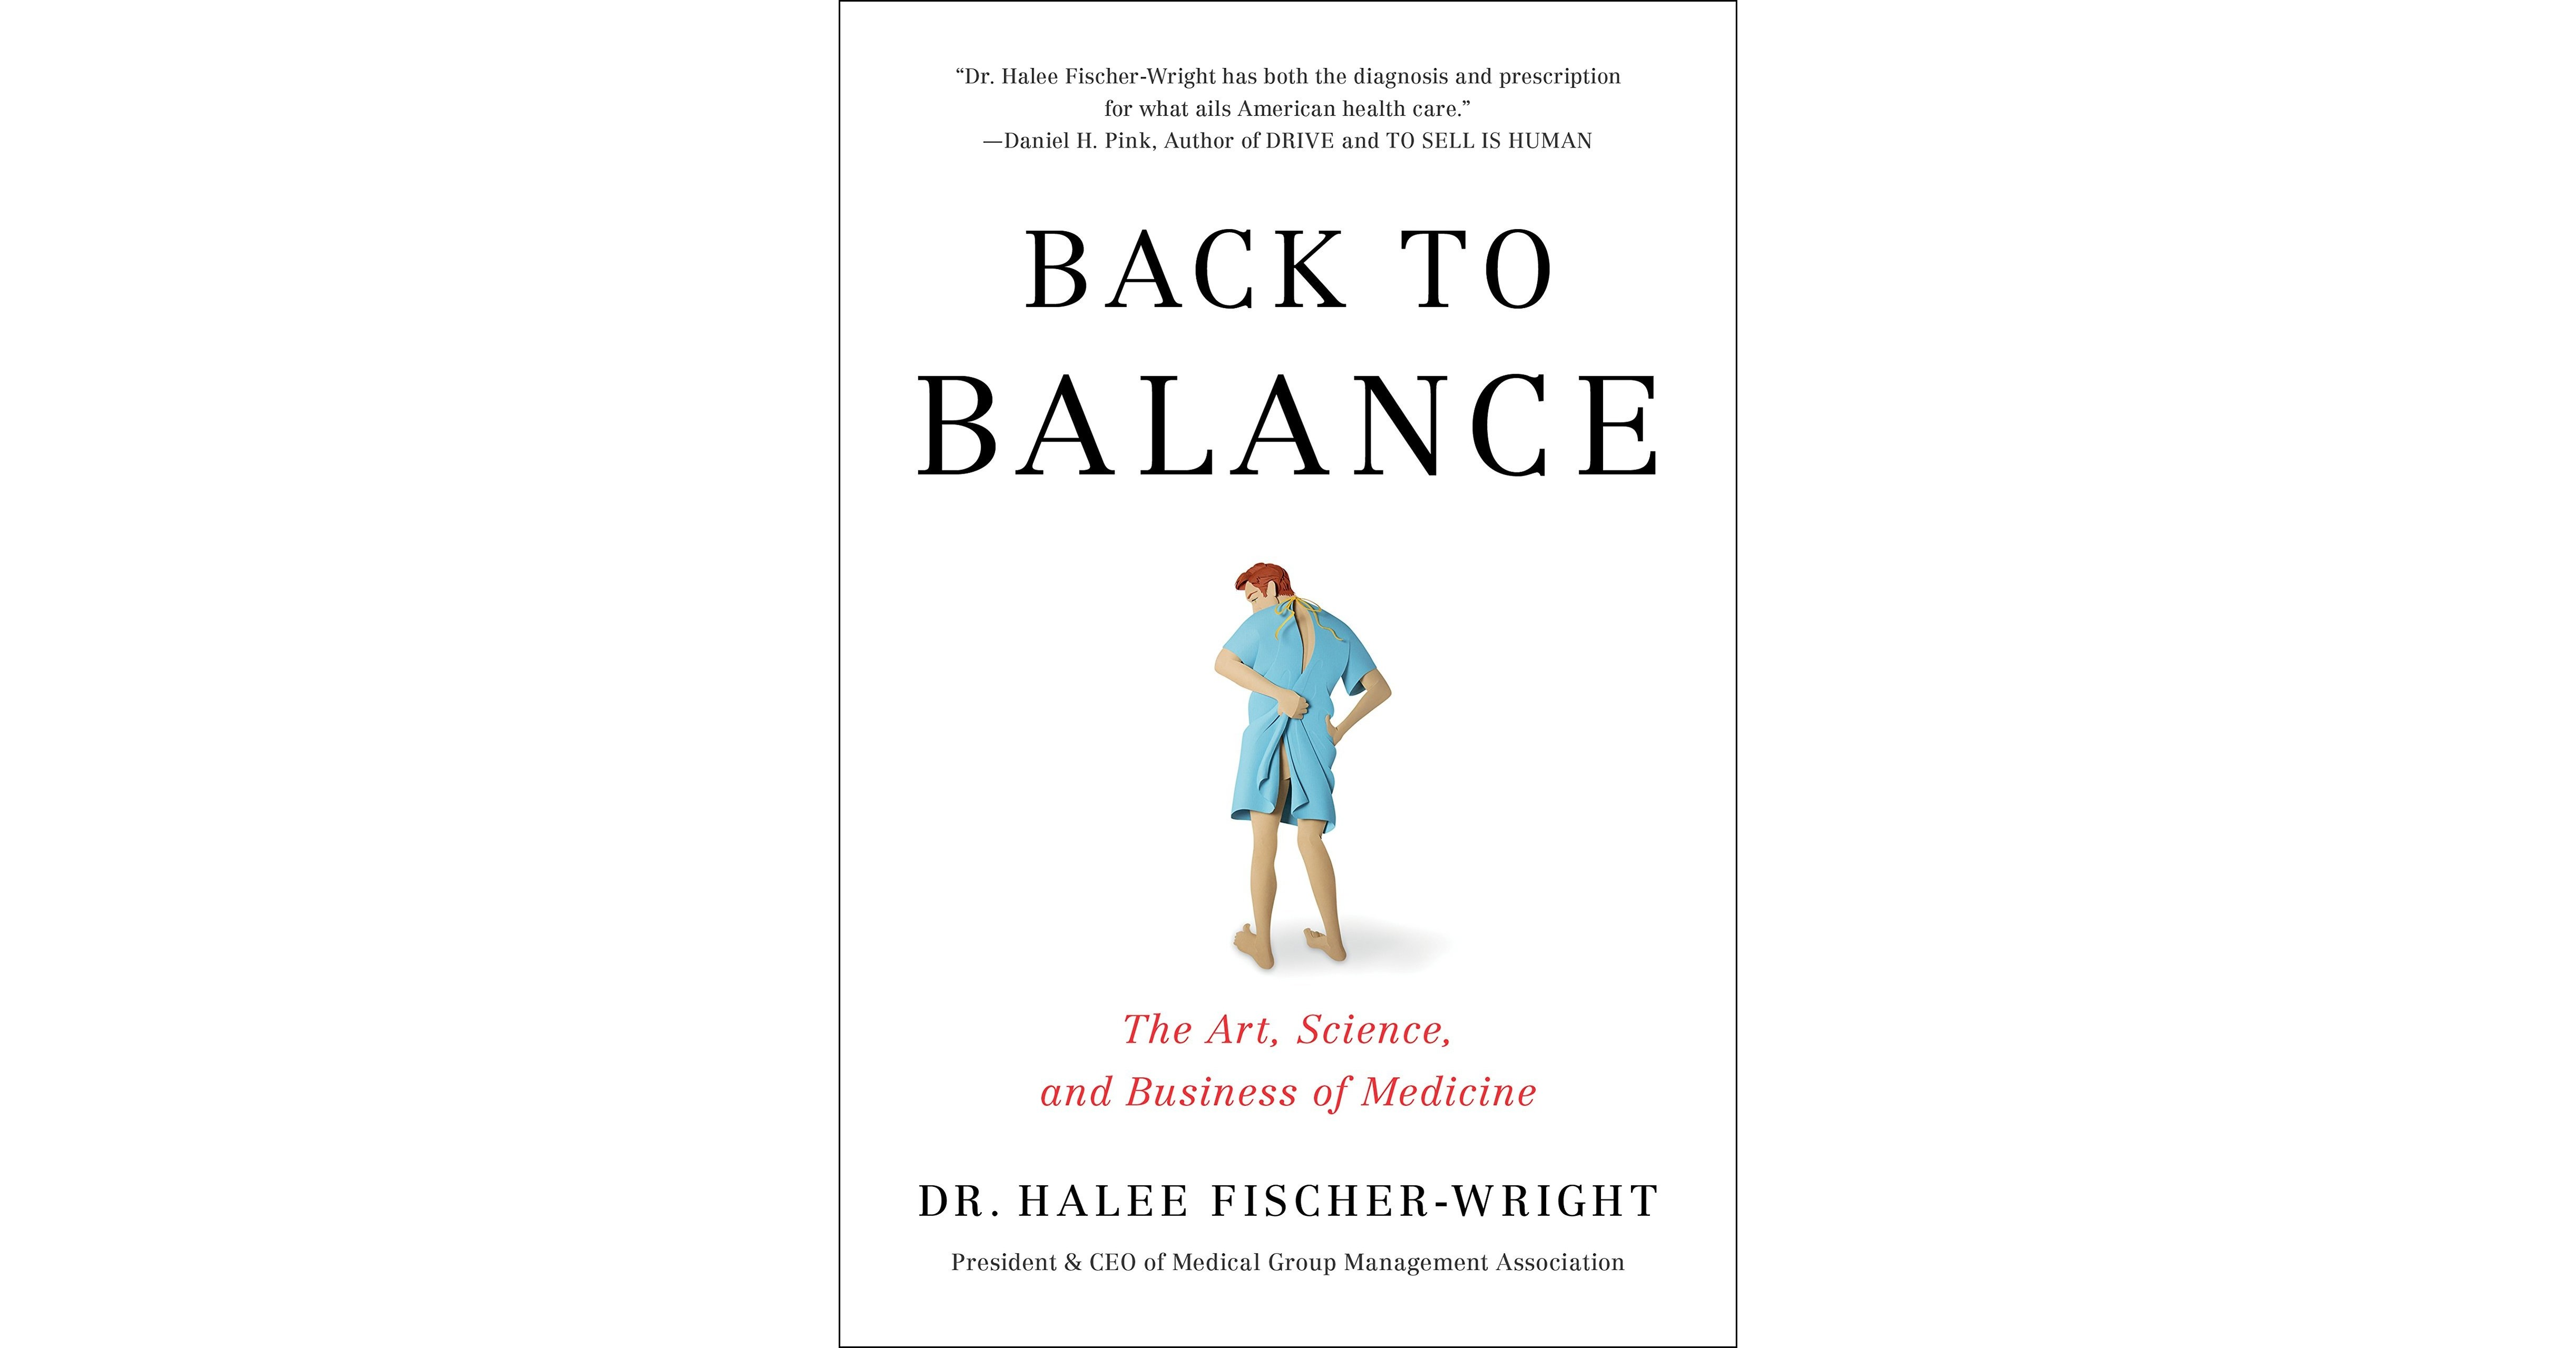 Dr. Halee Fischer-Wright, CEO Of Medical Group Management